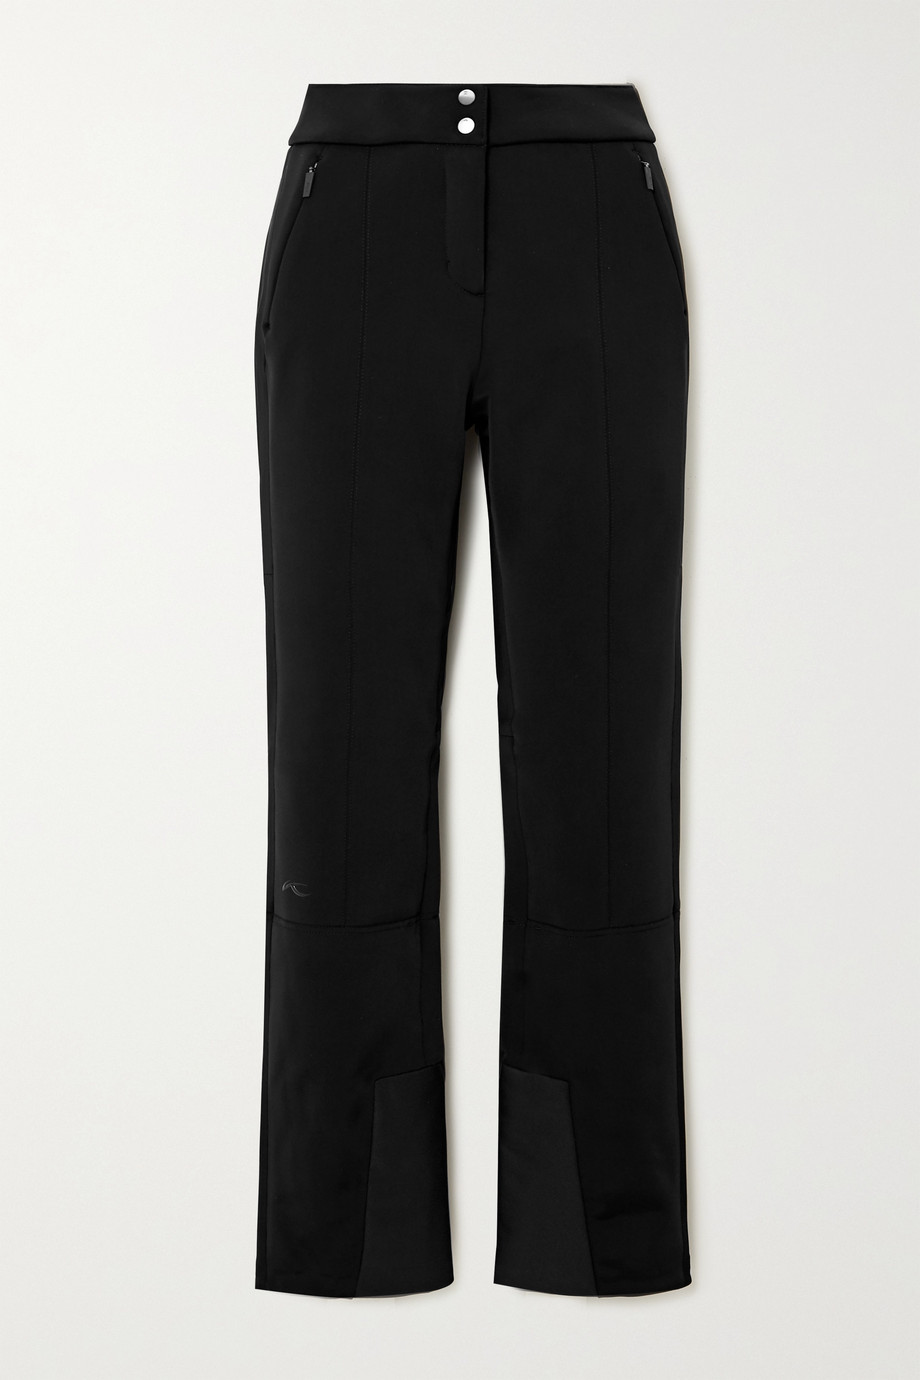 Kjus Sella Jet straight-leg ski pants